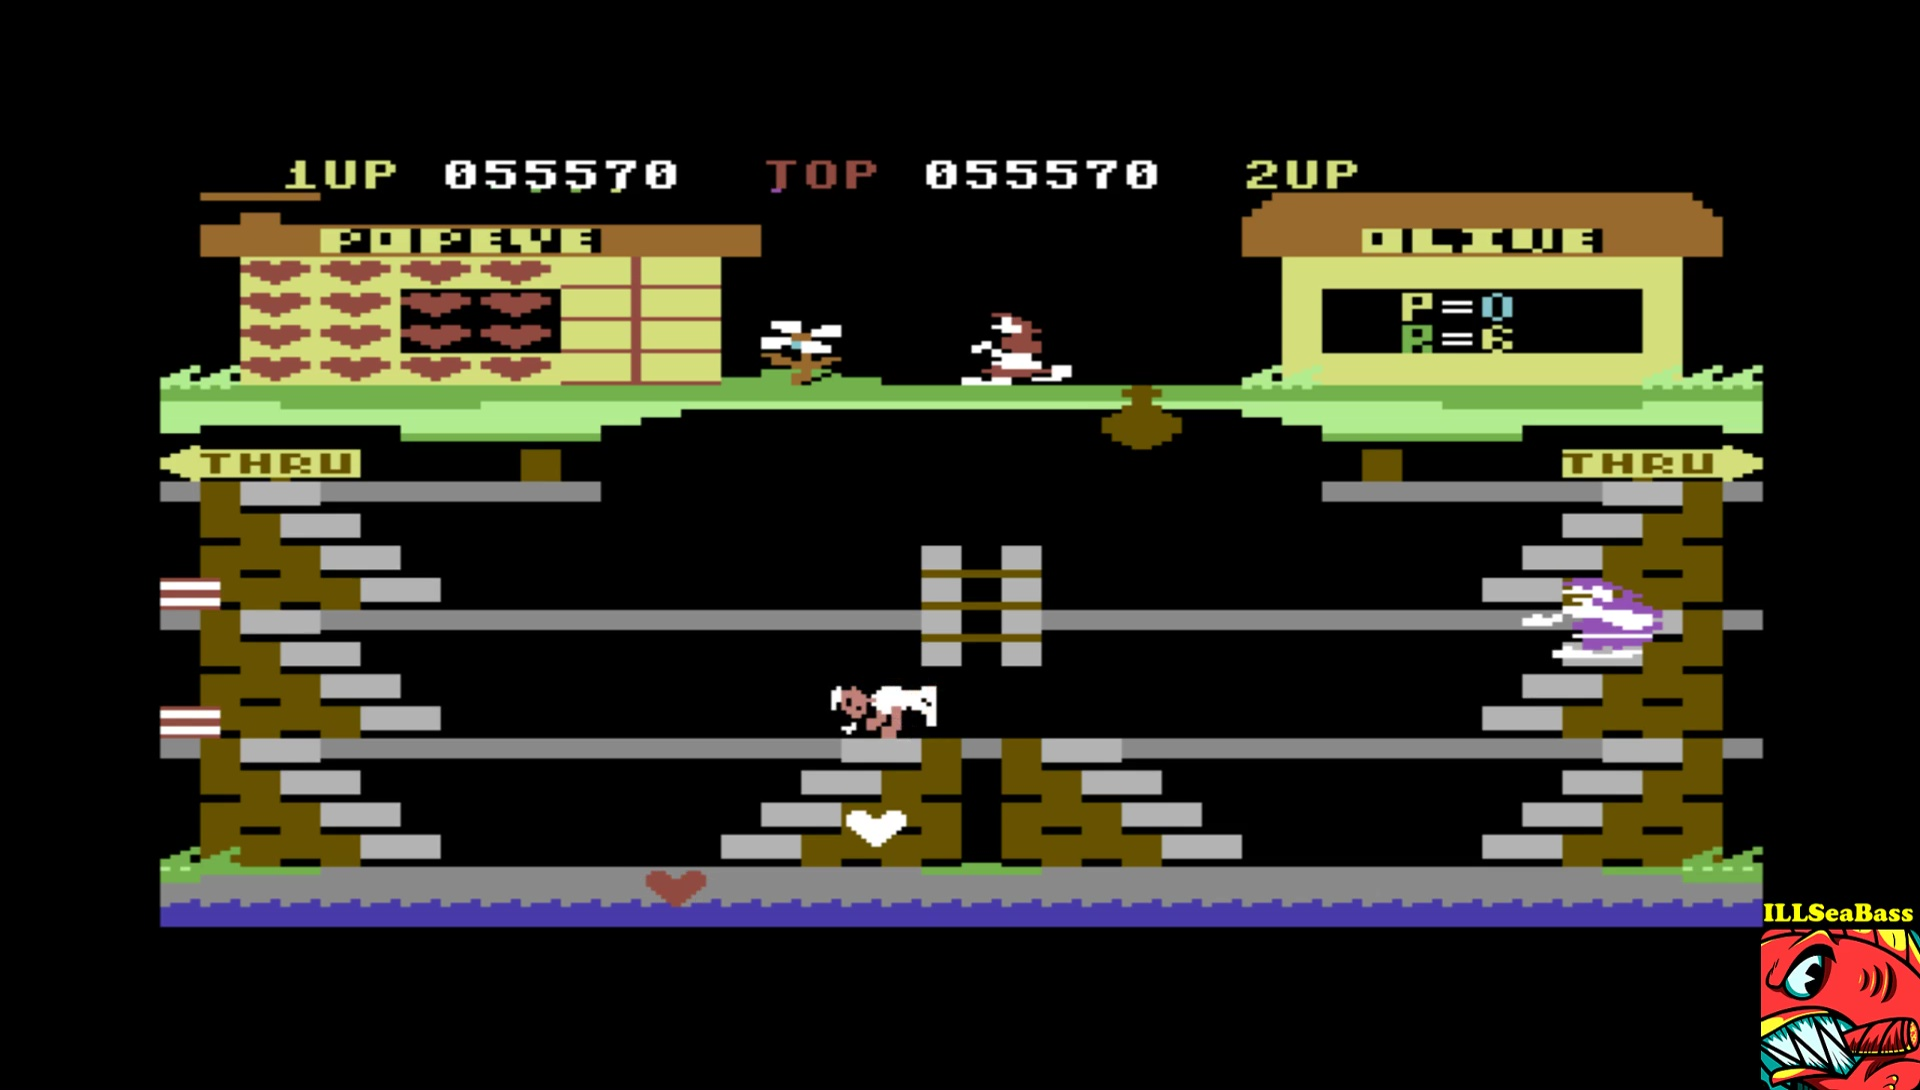 ILLSeaBass: Popeye (Commodore 64 Emulated) 55,570 points on 2017-05-15 21:46:35